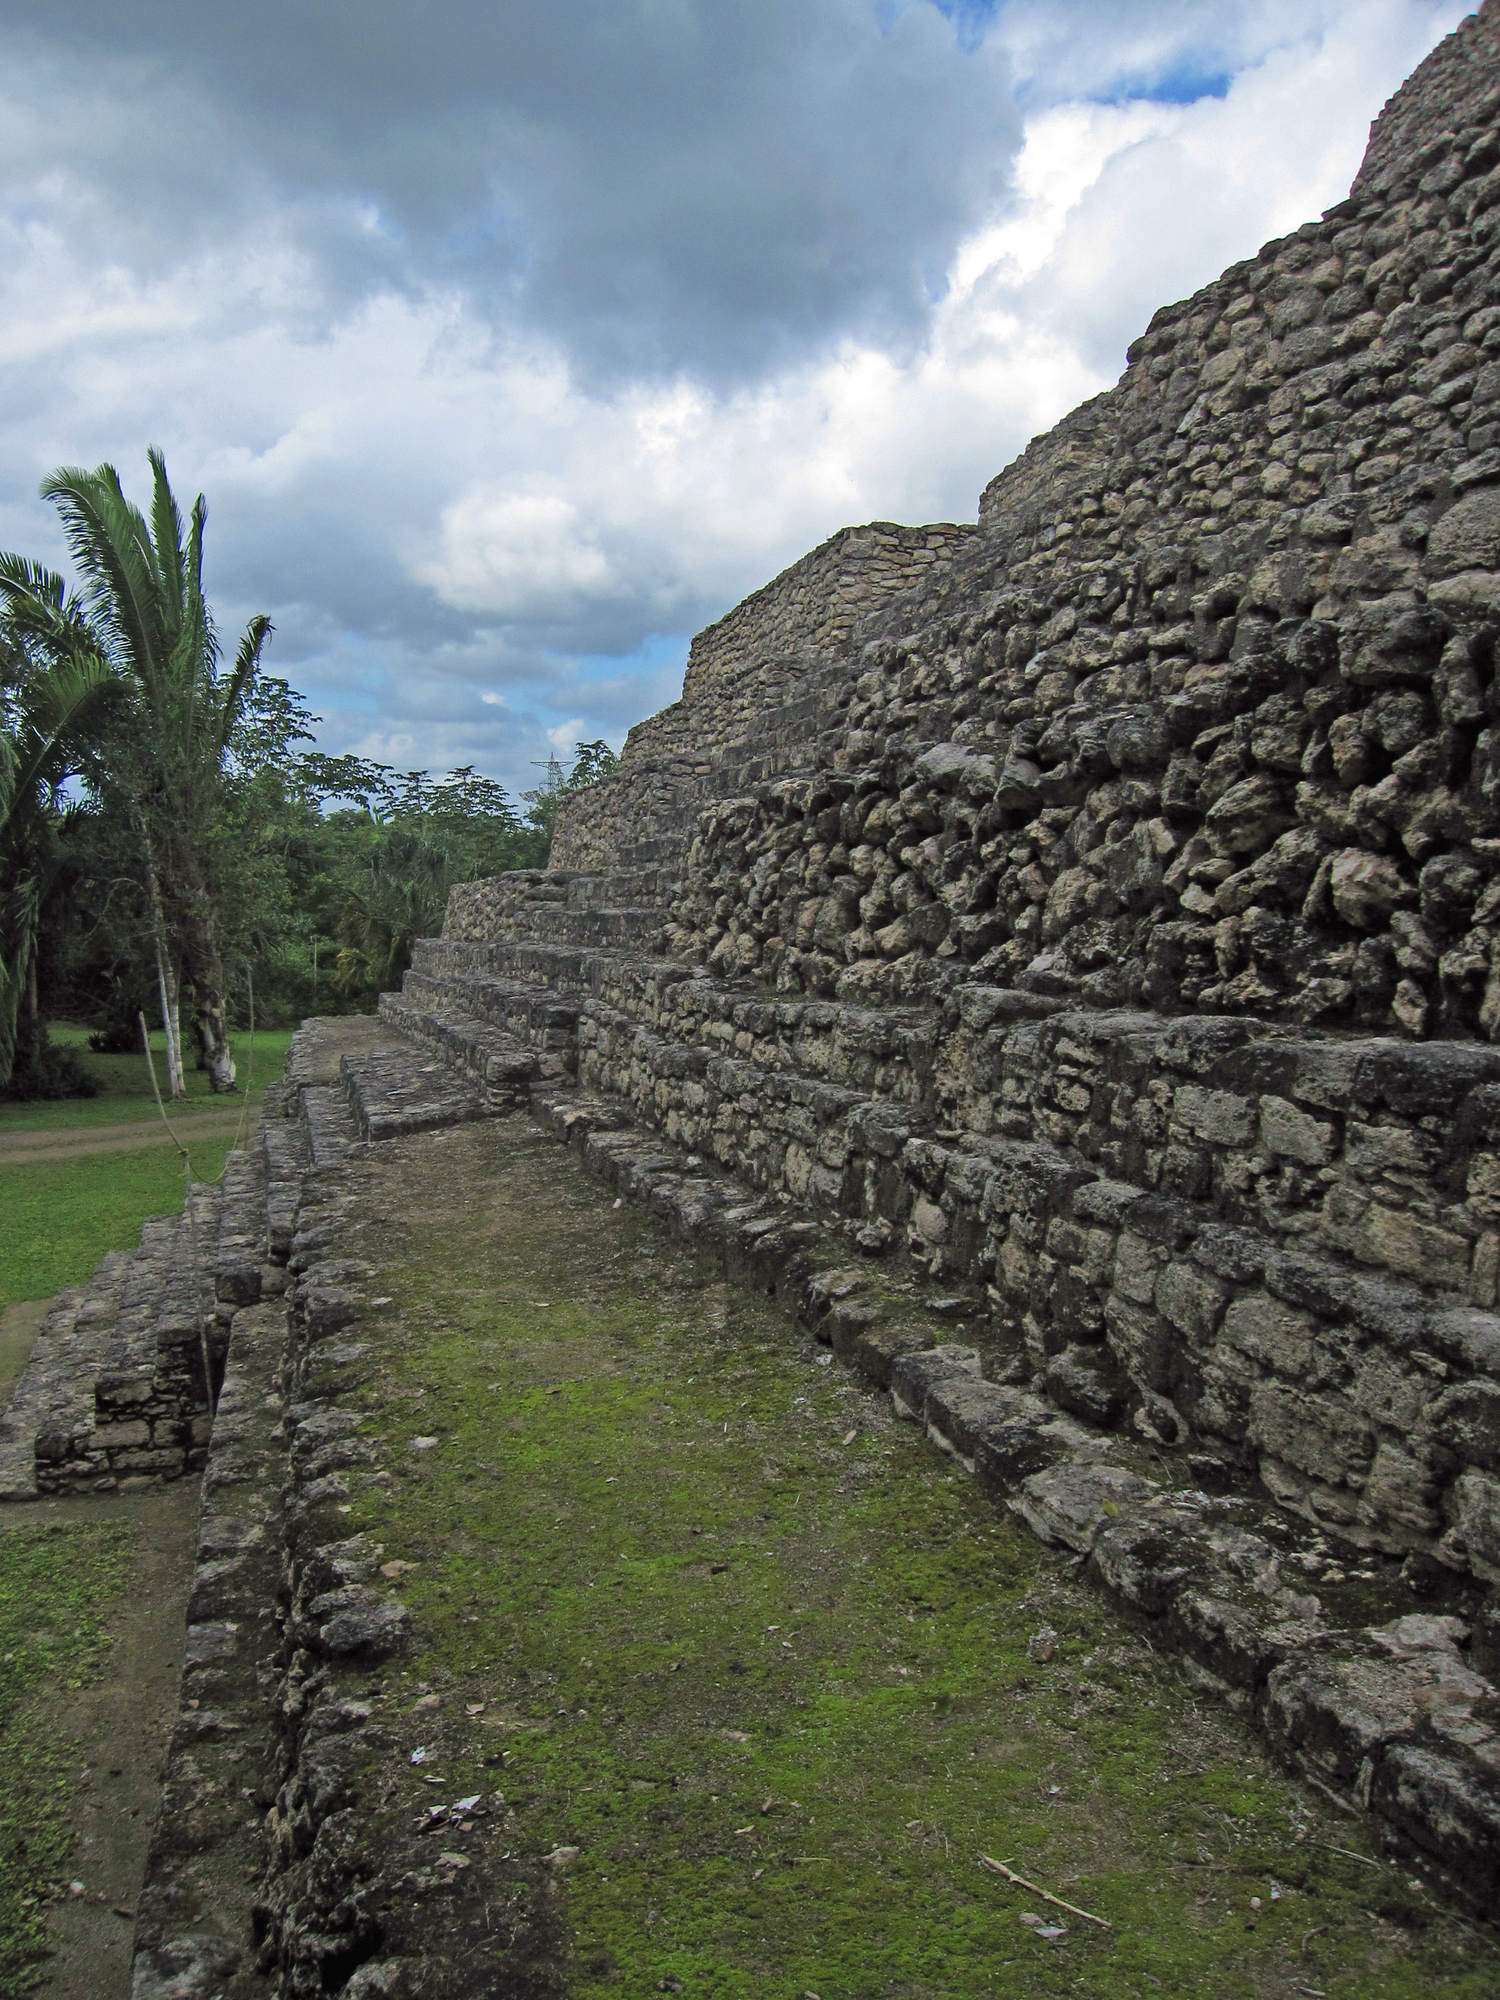 Chacchoben is a Mayan ruin along the Costa Maya route, it's easily accessible to visit and not as crowded as Tulum or Chichen Itza.